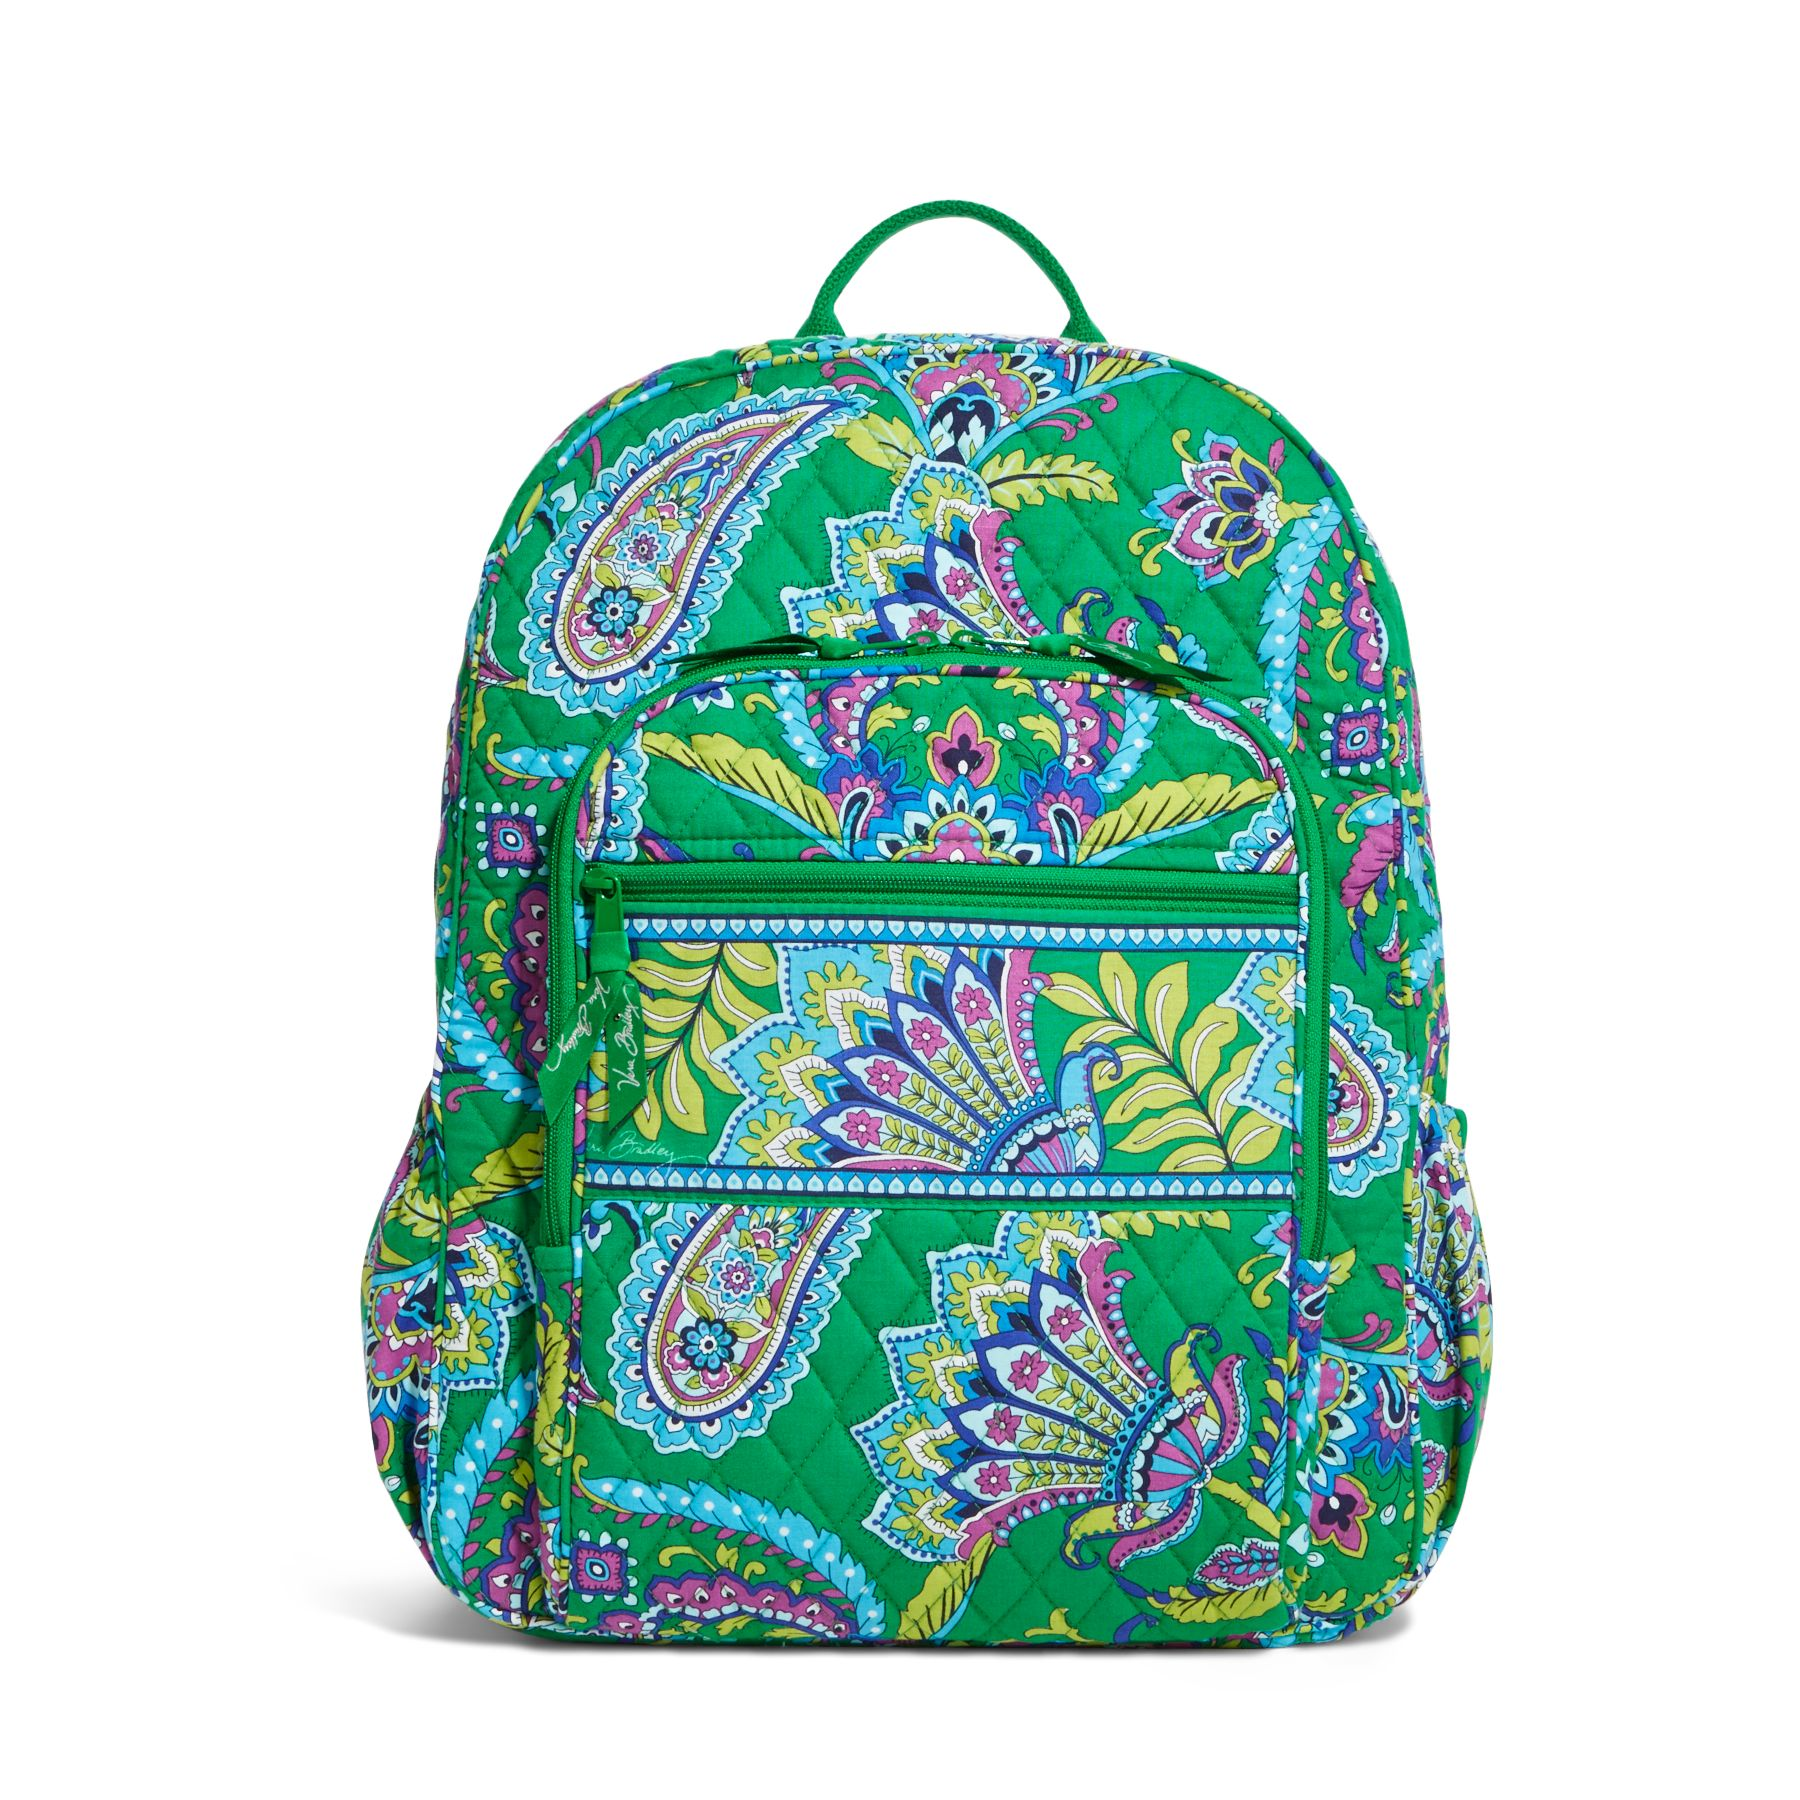 A vibrant print covers the Vera Bradley Iconic Campus Backpack for a free-spirited way to go hands-free. See at Macys. LINKSHARE. Vera Bradley Vera Bradley Iconic Campus Backpack Macys $ $ Vera Bradley. Vera Bradley Iconic Campus Backpack (Coral Reef) Backpack Bags $